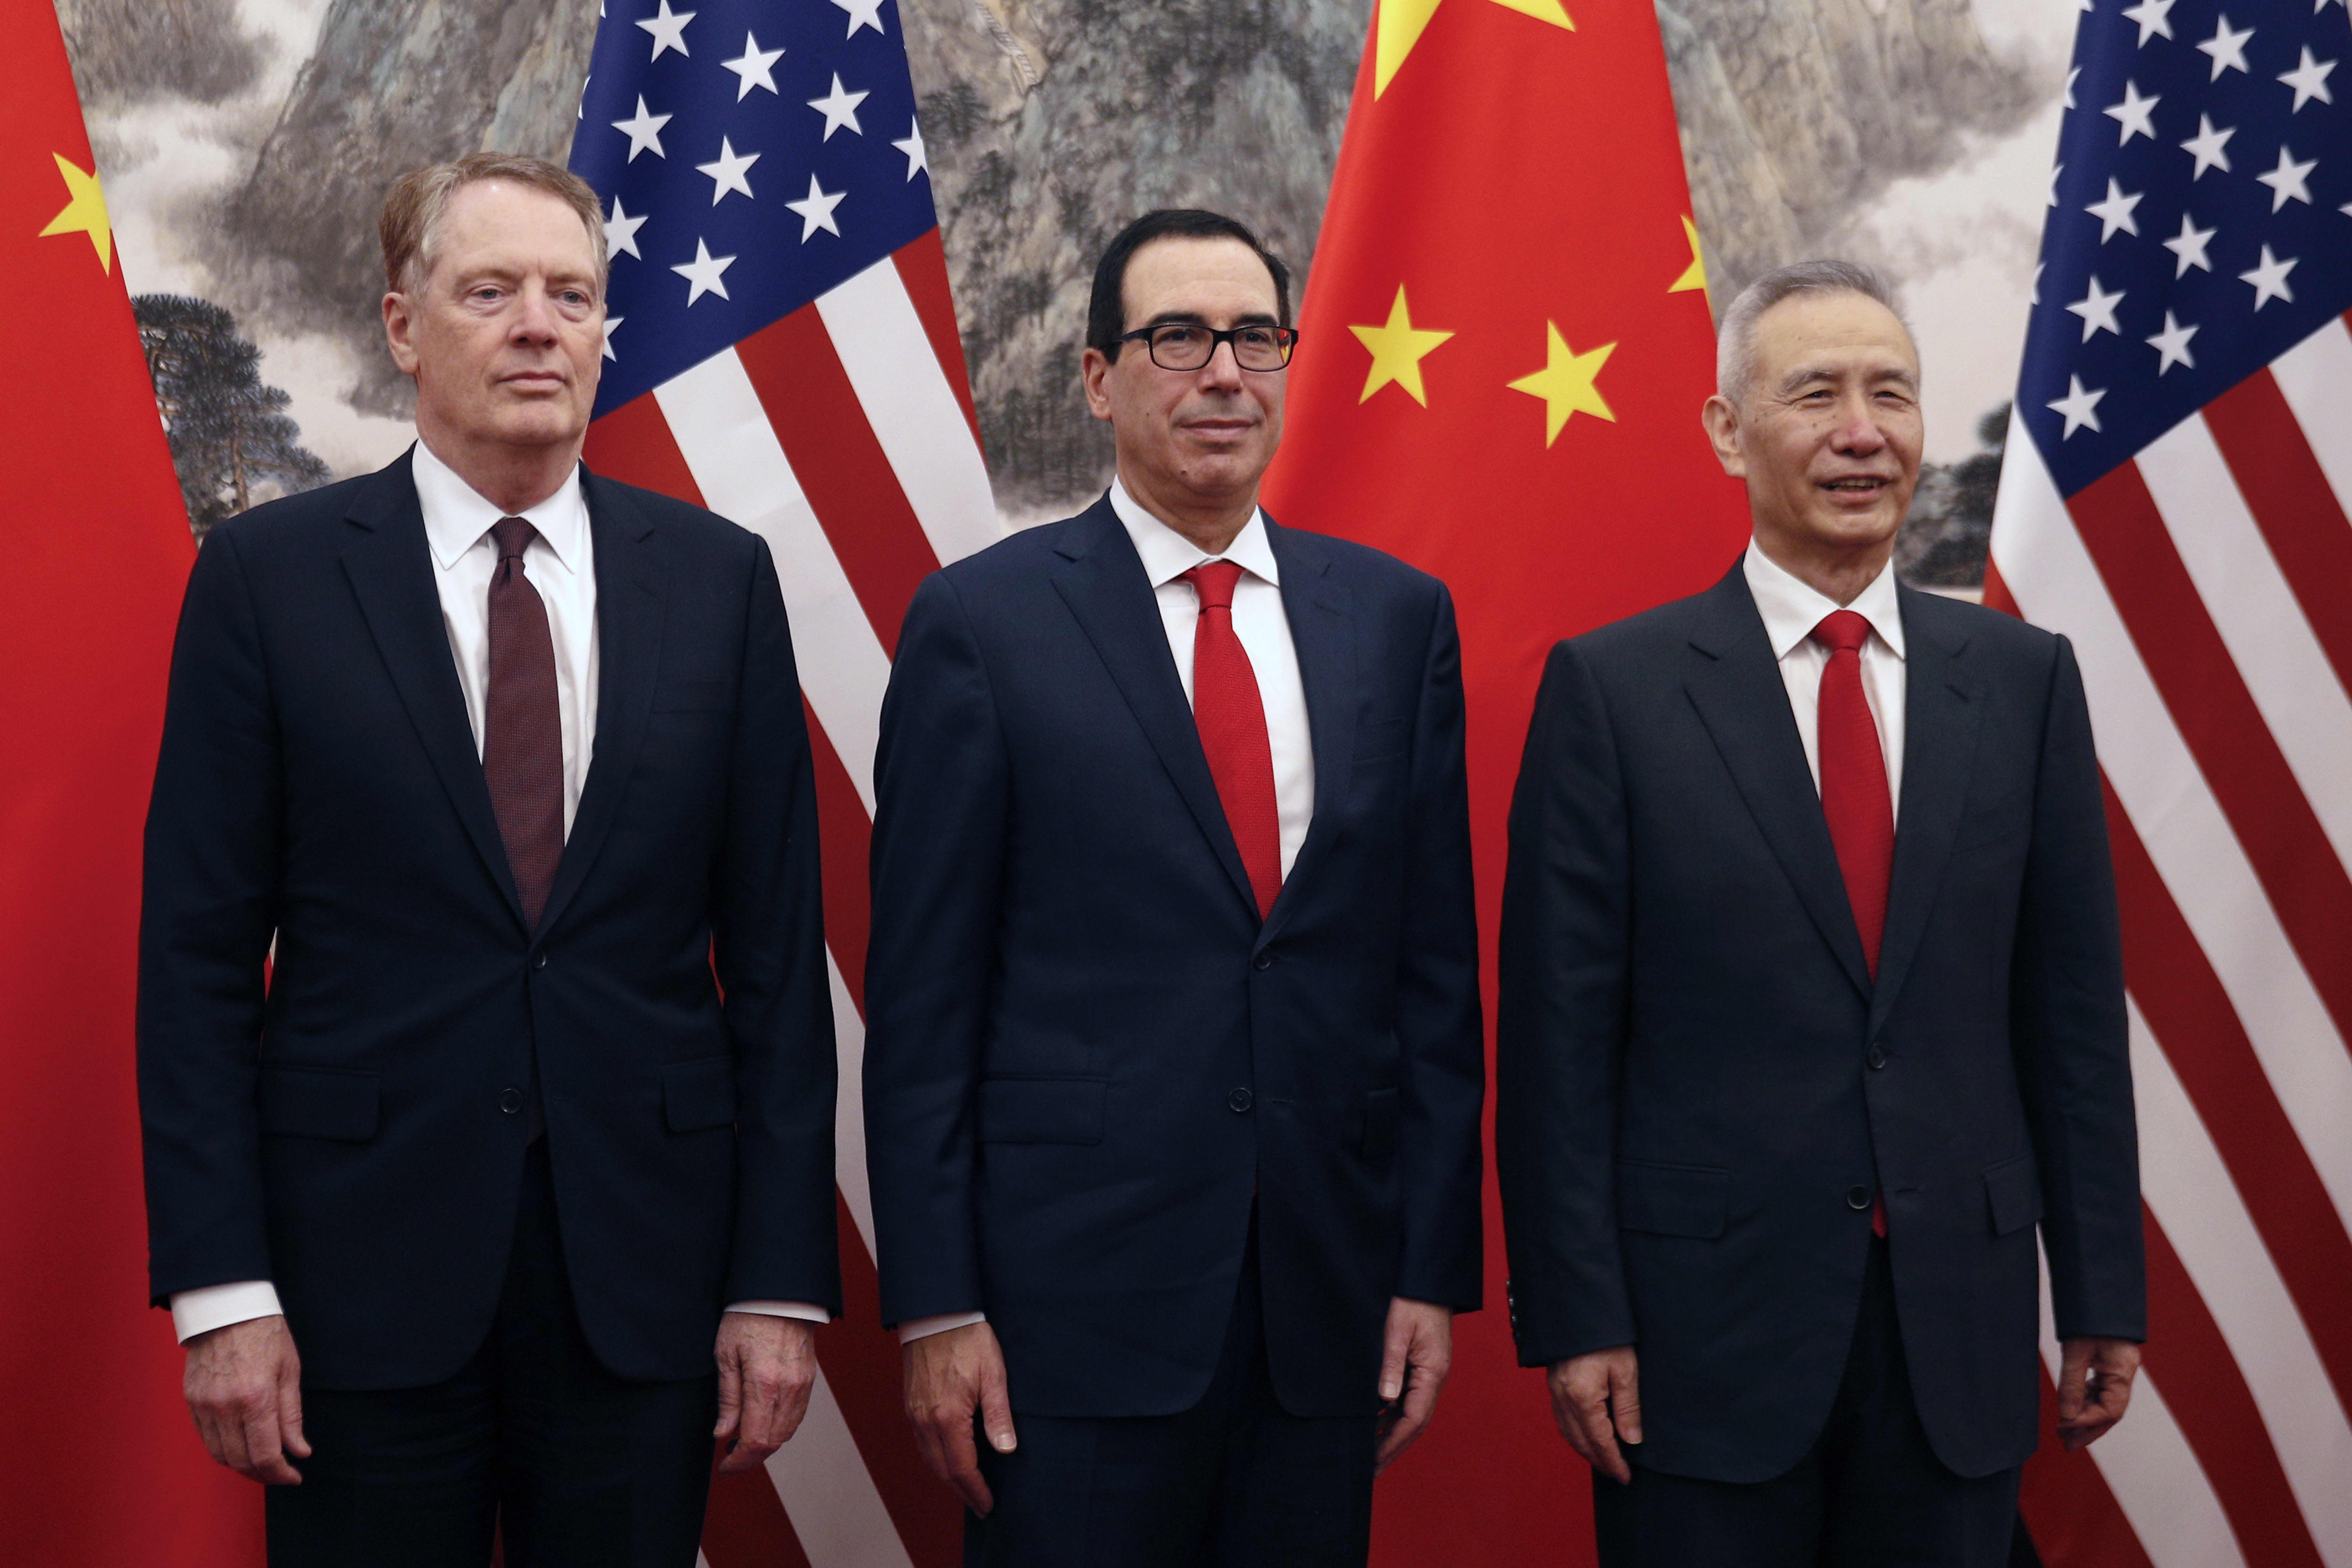 China and US kick off latest trade talks after 'nice' working dinner